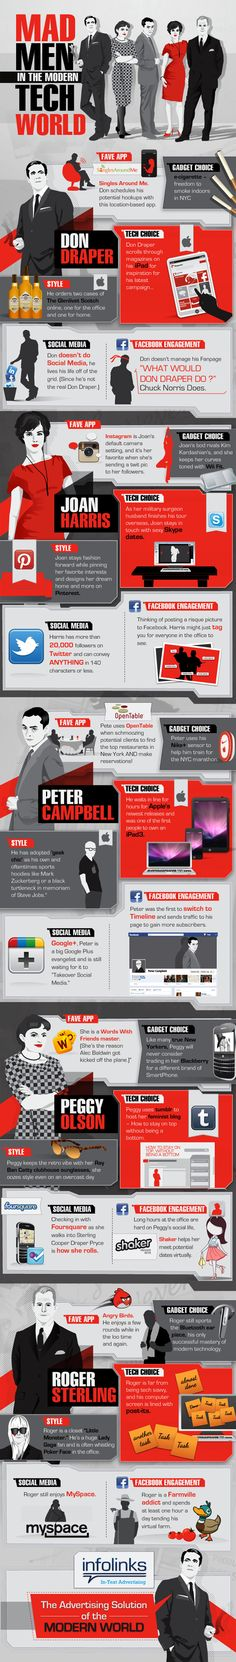 Mad Men In The Modern Tech World - Infographic